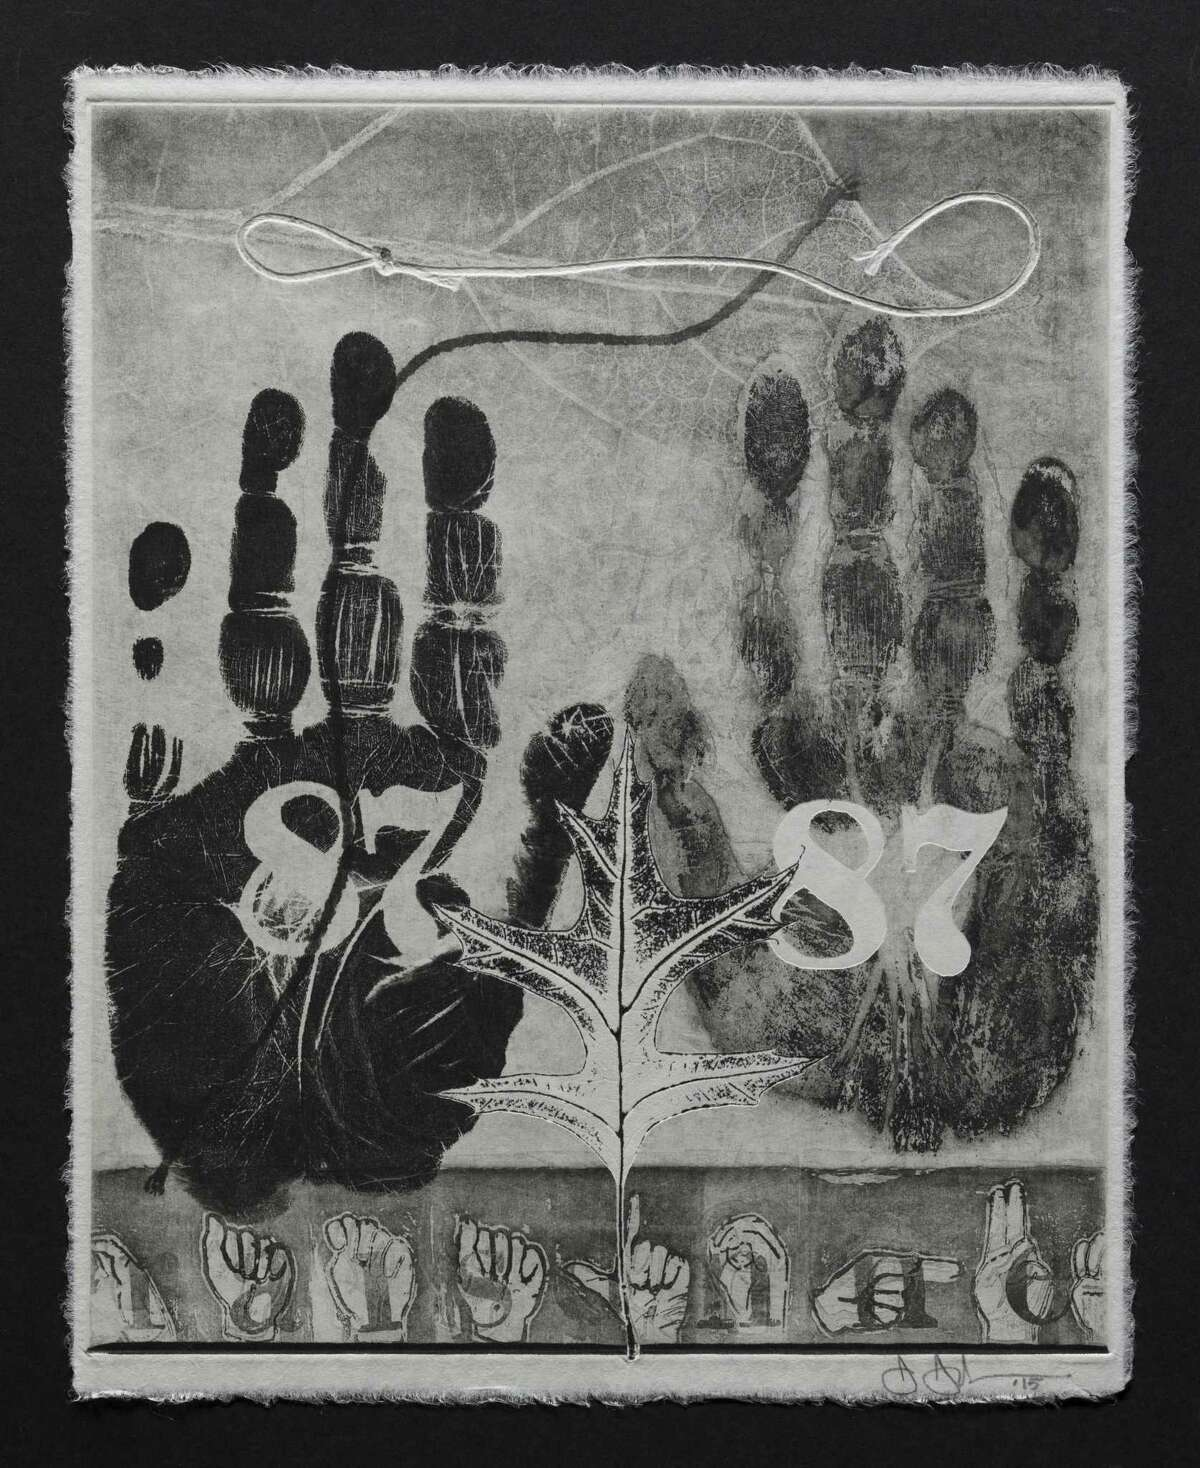 """""""87, Catalogue Raisonne,"""" is one of 100 monoprints on view along with other works in """"Jasper Johns: 100 Variations on a Theme"""" at the Museum of Fine Arts, Houston."""